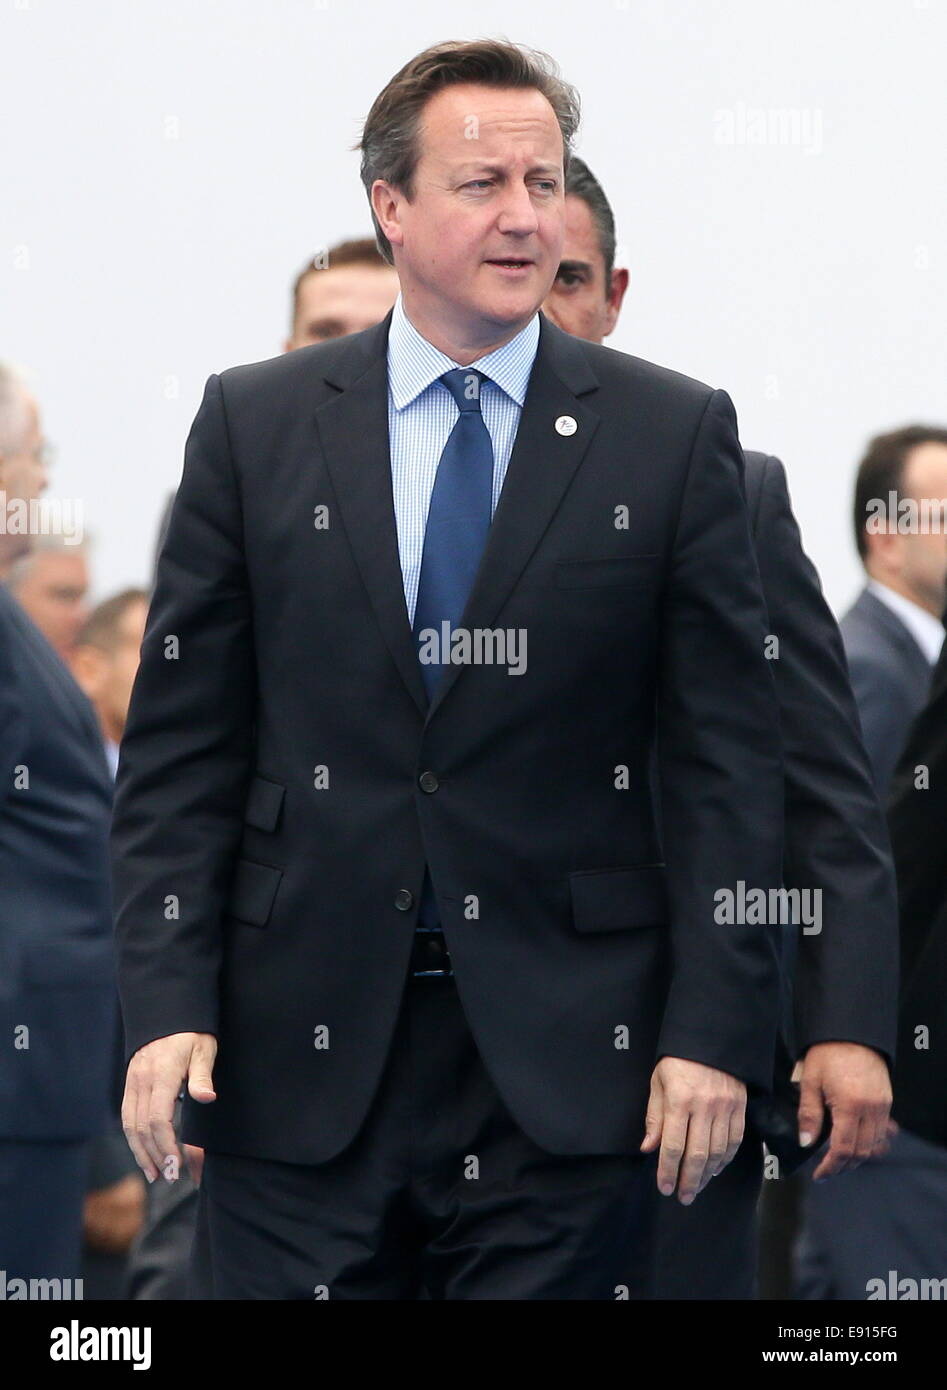 Milan, Italy. 17th Oct, 2014. British prime minister David Cameron arrives at the 10th Asia-Europe Meeting (ASEM) at the Milan Congress Centre (MiCo). Credit:  Mikhail Metzel/TASS/Alamy Live News Stock Photo